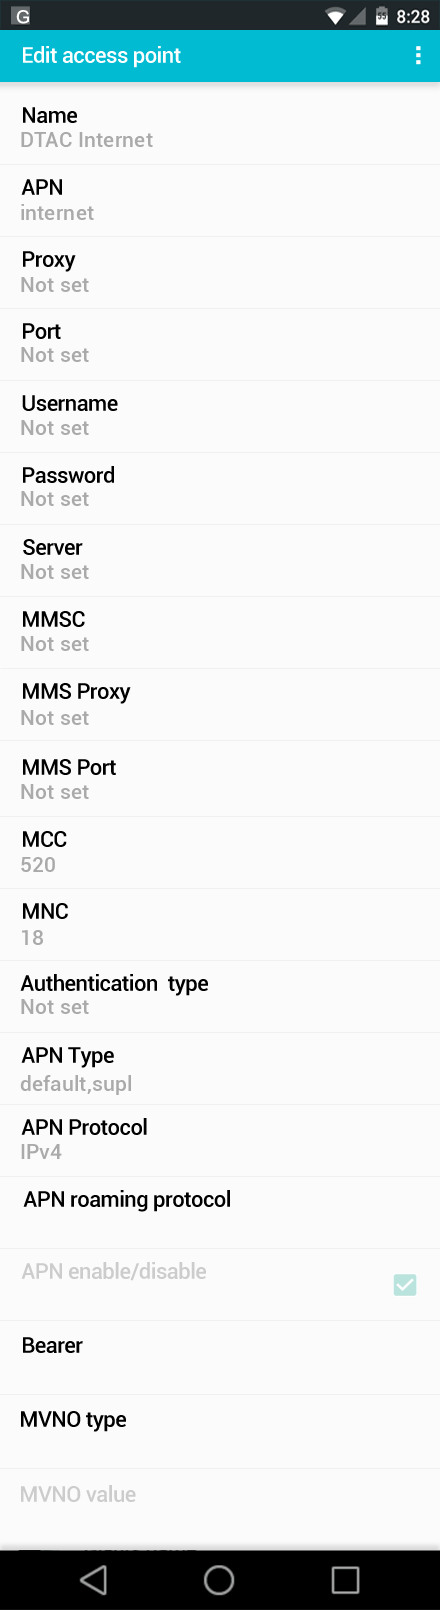 DTAC Internet APN settings for Android